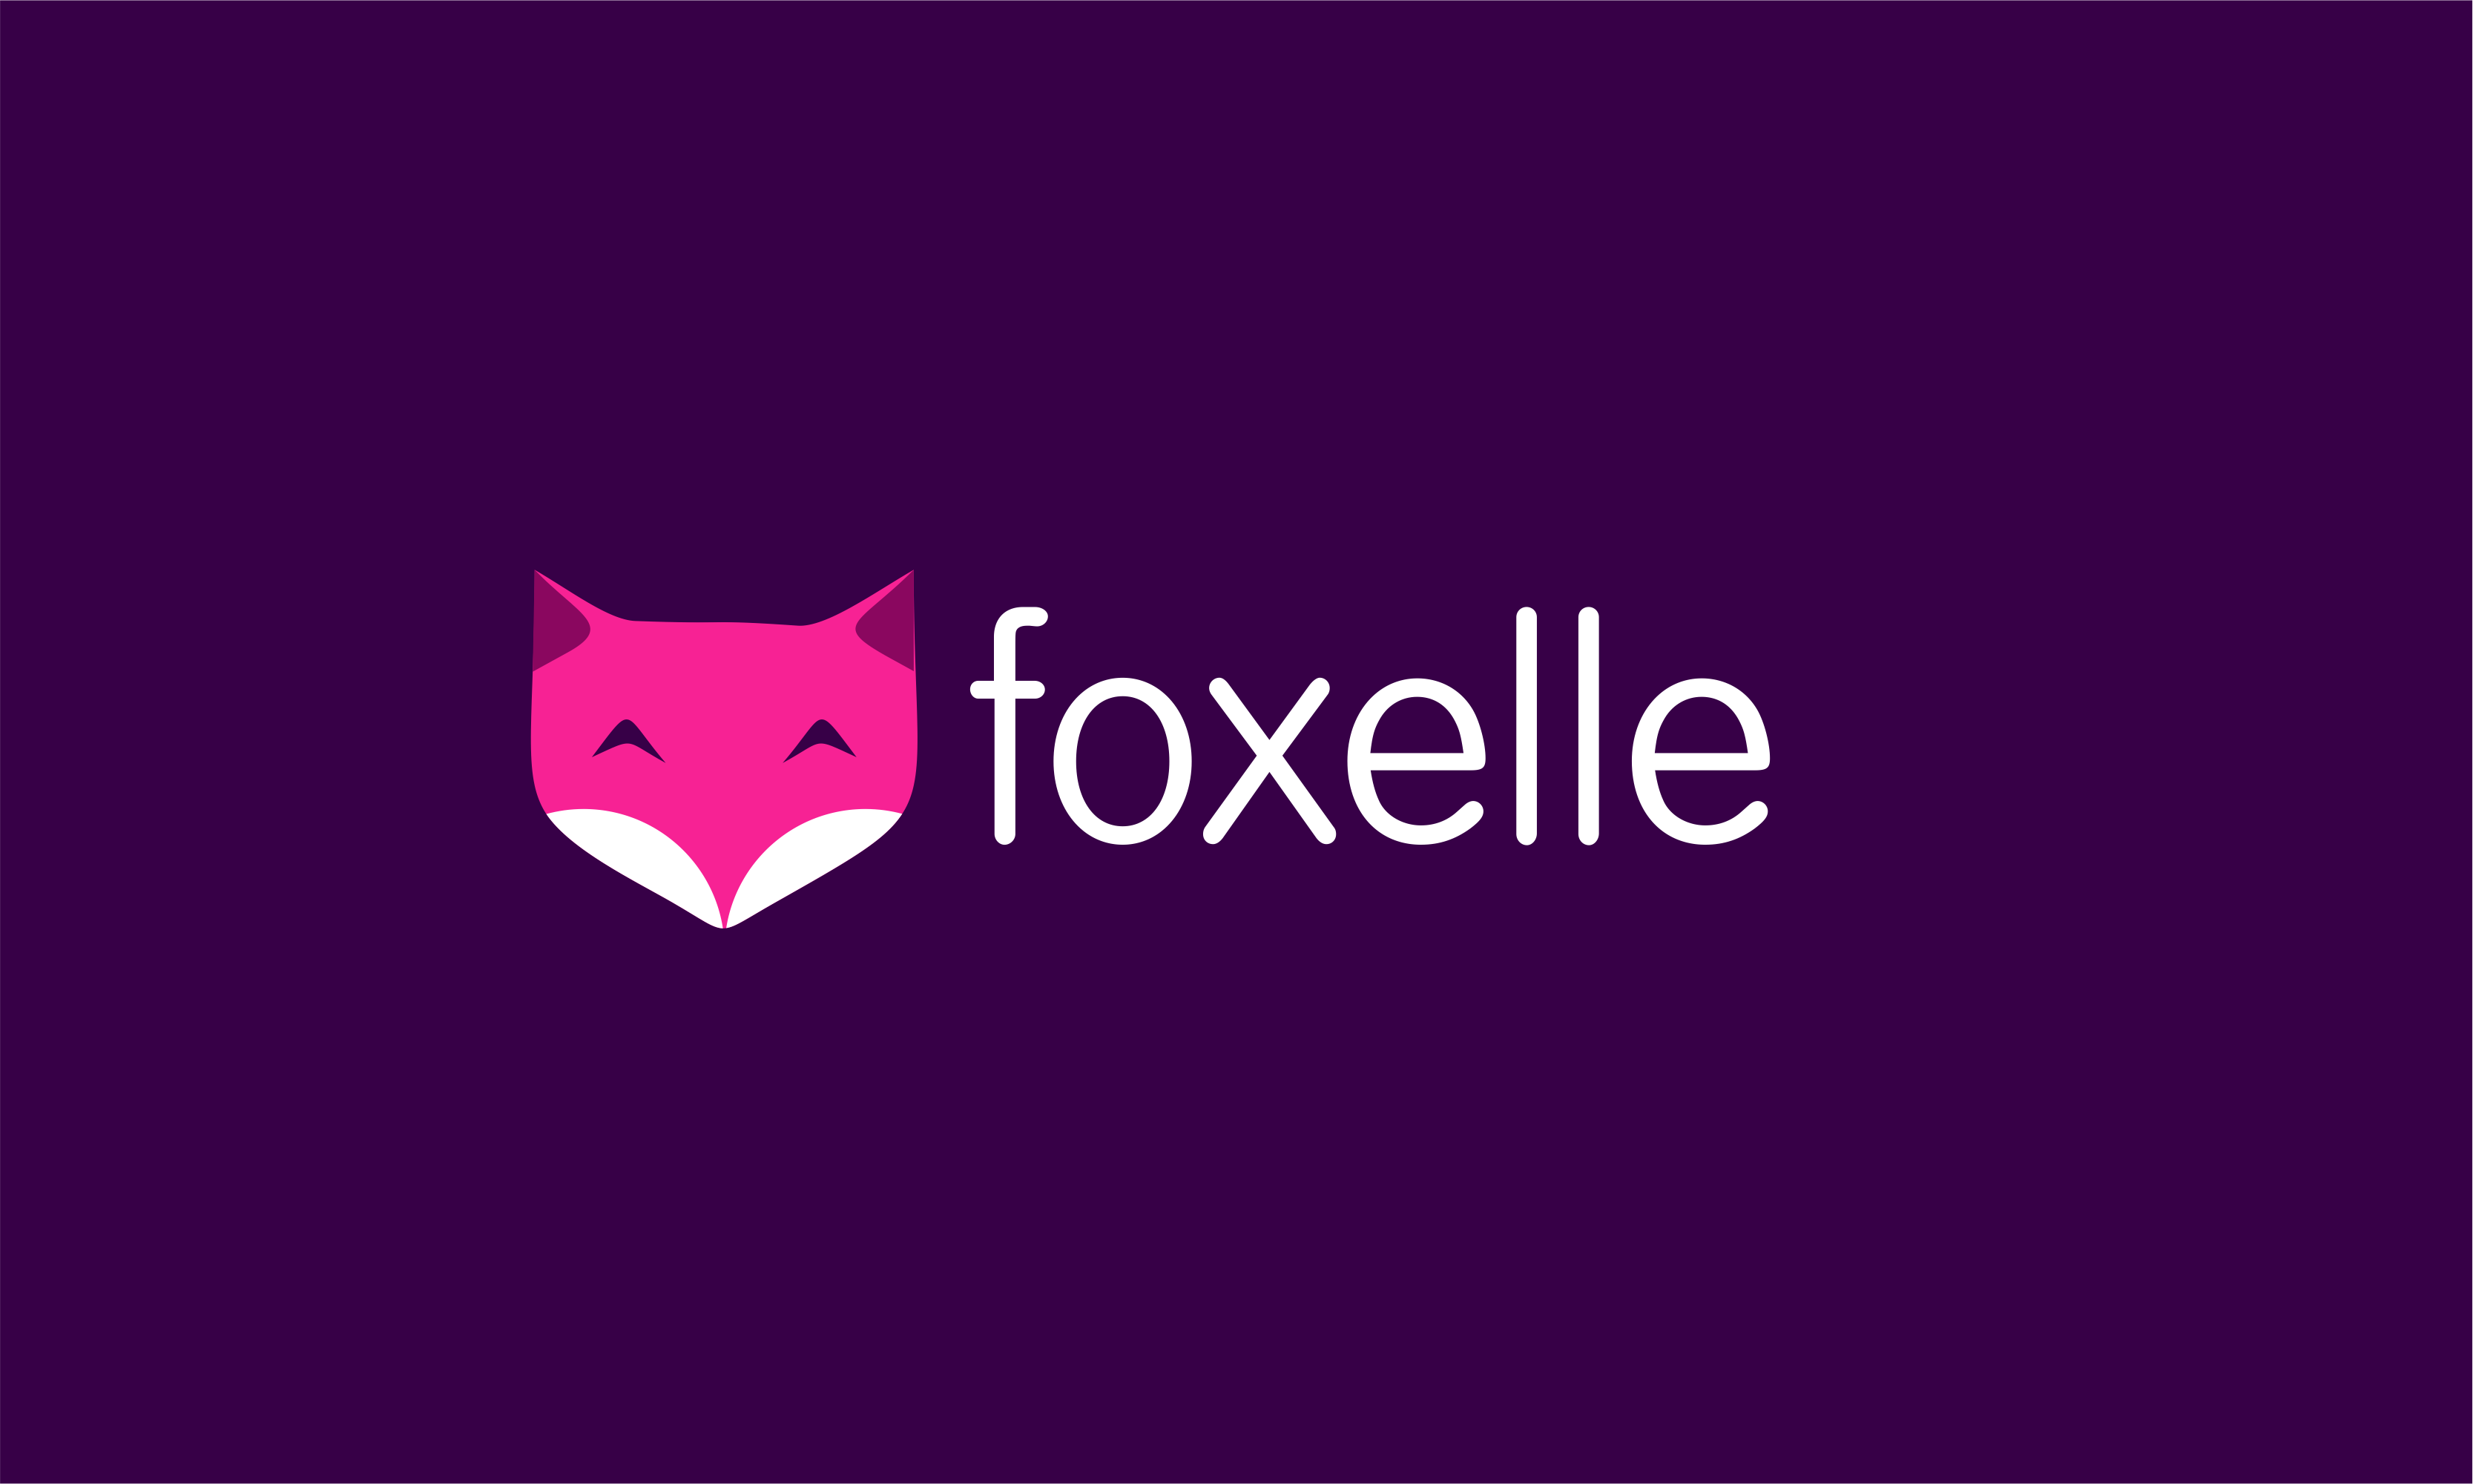 bef786468f0 Keywords for Foxelle